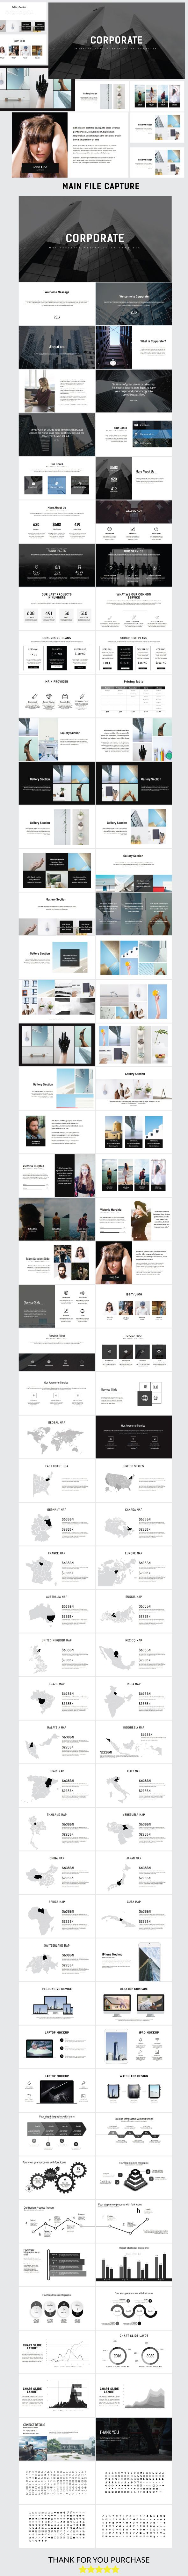 Corporate Multipurpose Powerpoint - #PowerPoint #Templates Presentation Templates Download here: https://graphicriver.net/item/corporate-multipurpose-powerpoint/19304179?ref=alena994